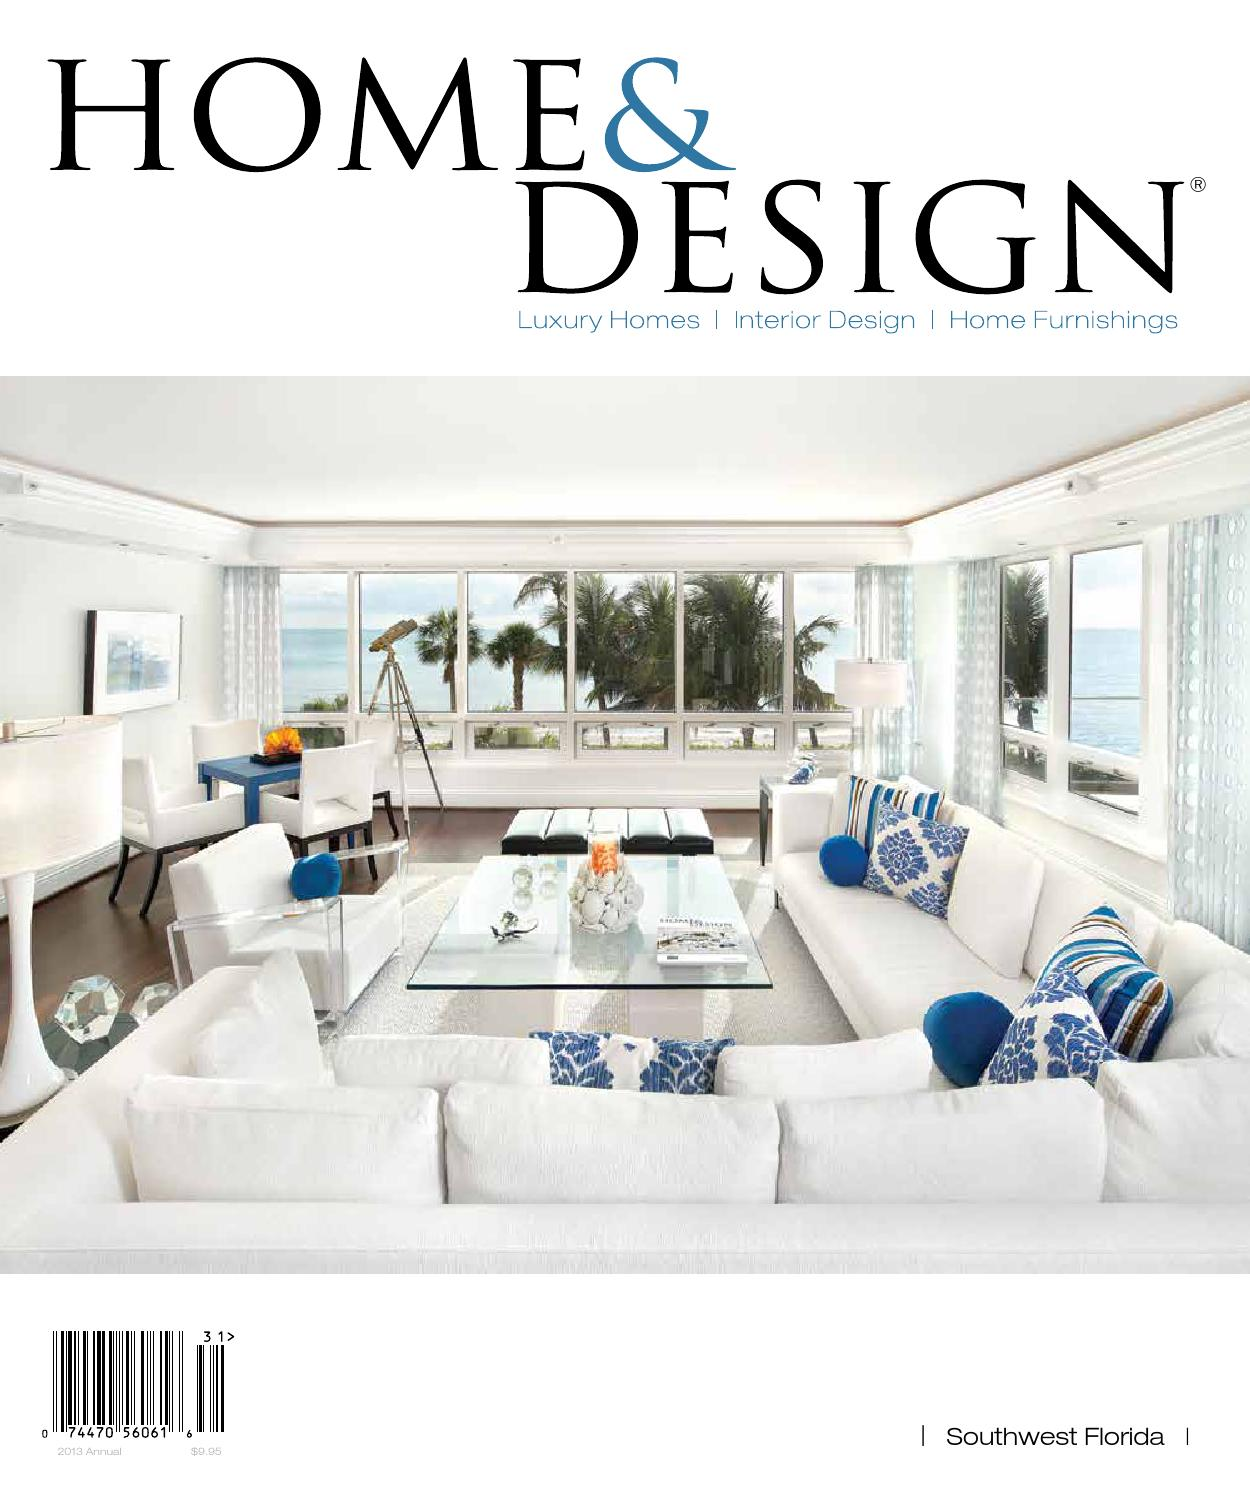 Home & Design Magazine | Annual Resource Guide 2013 by Anthony Spano ...